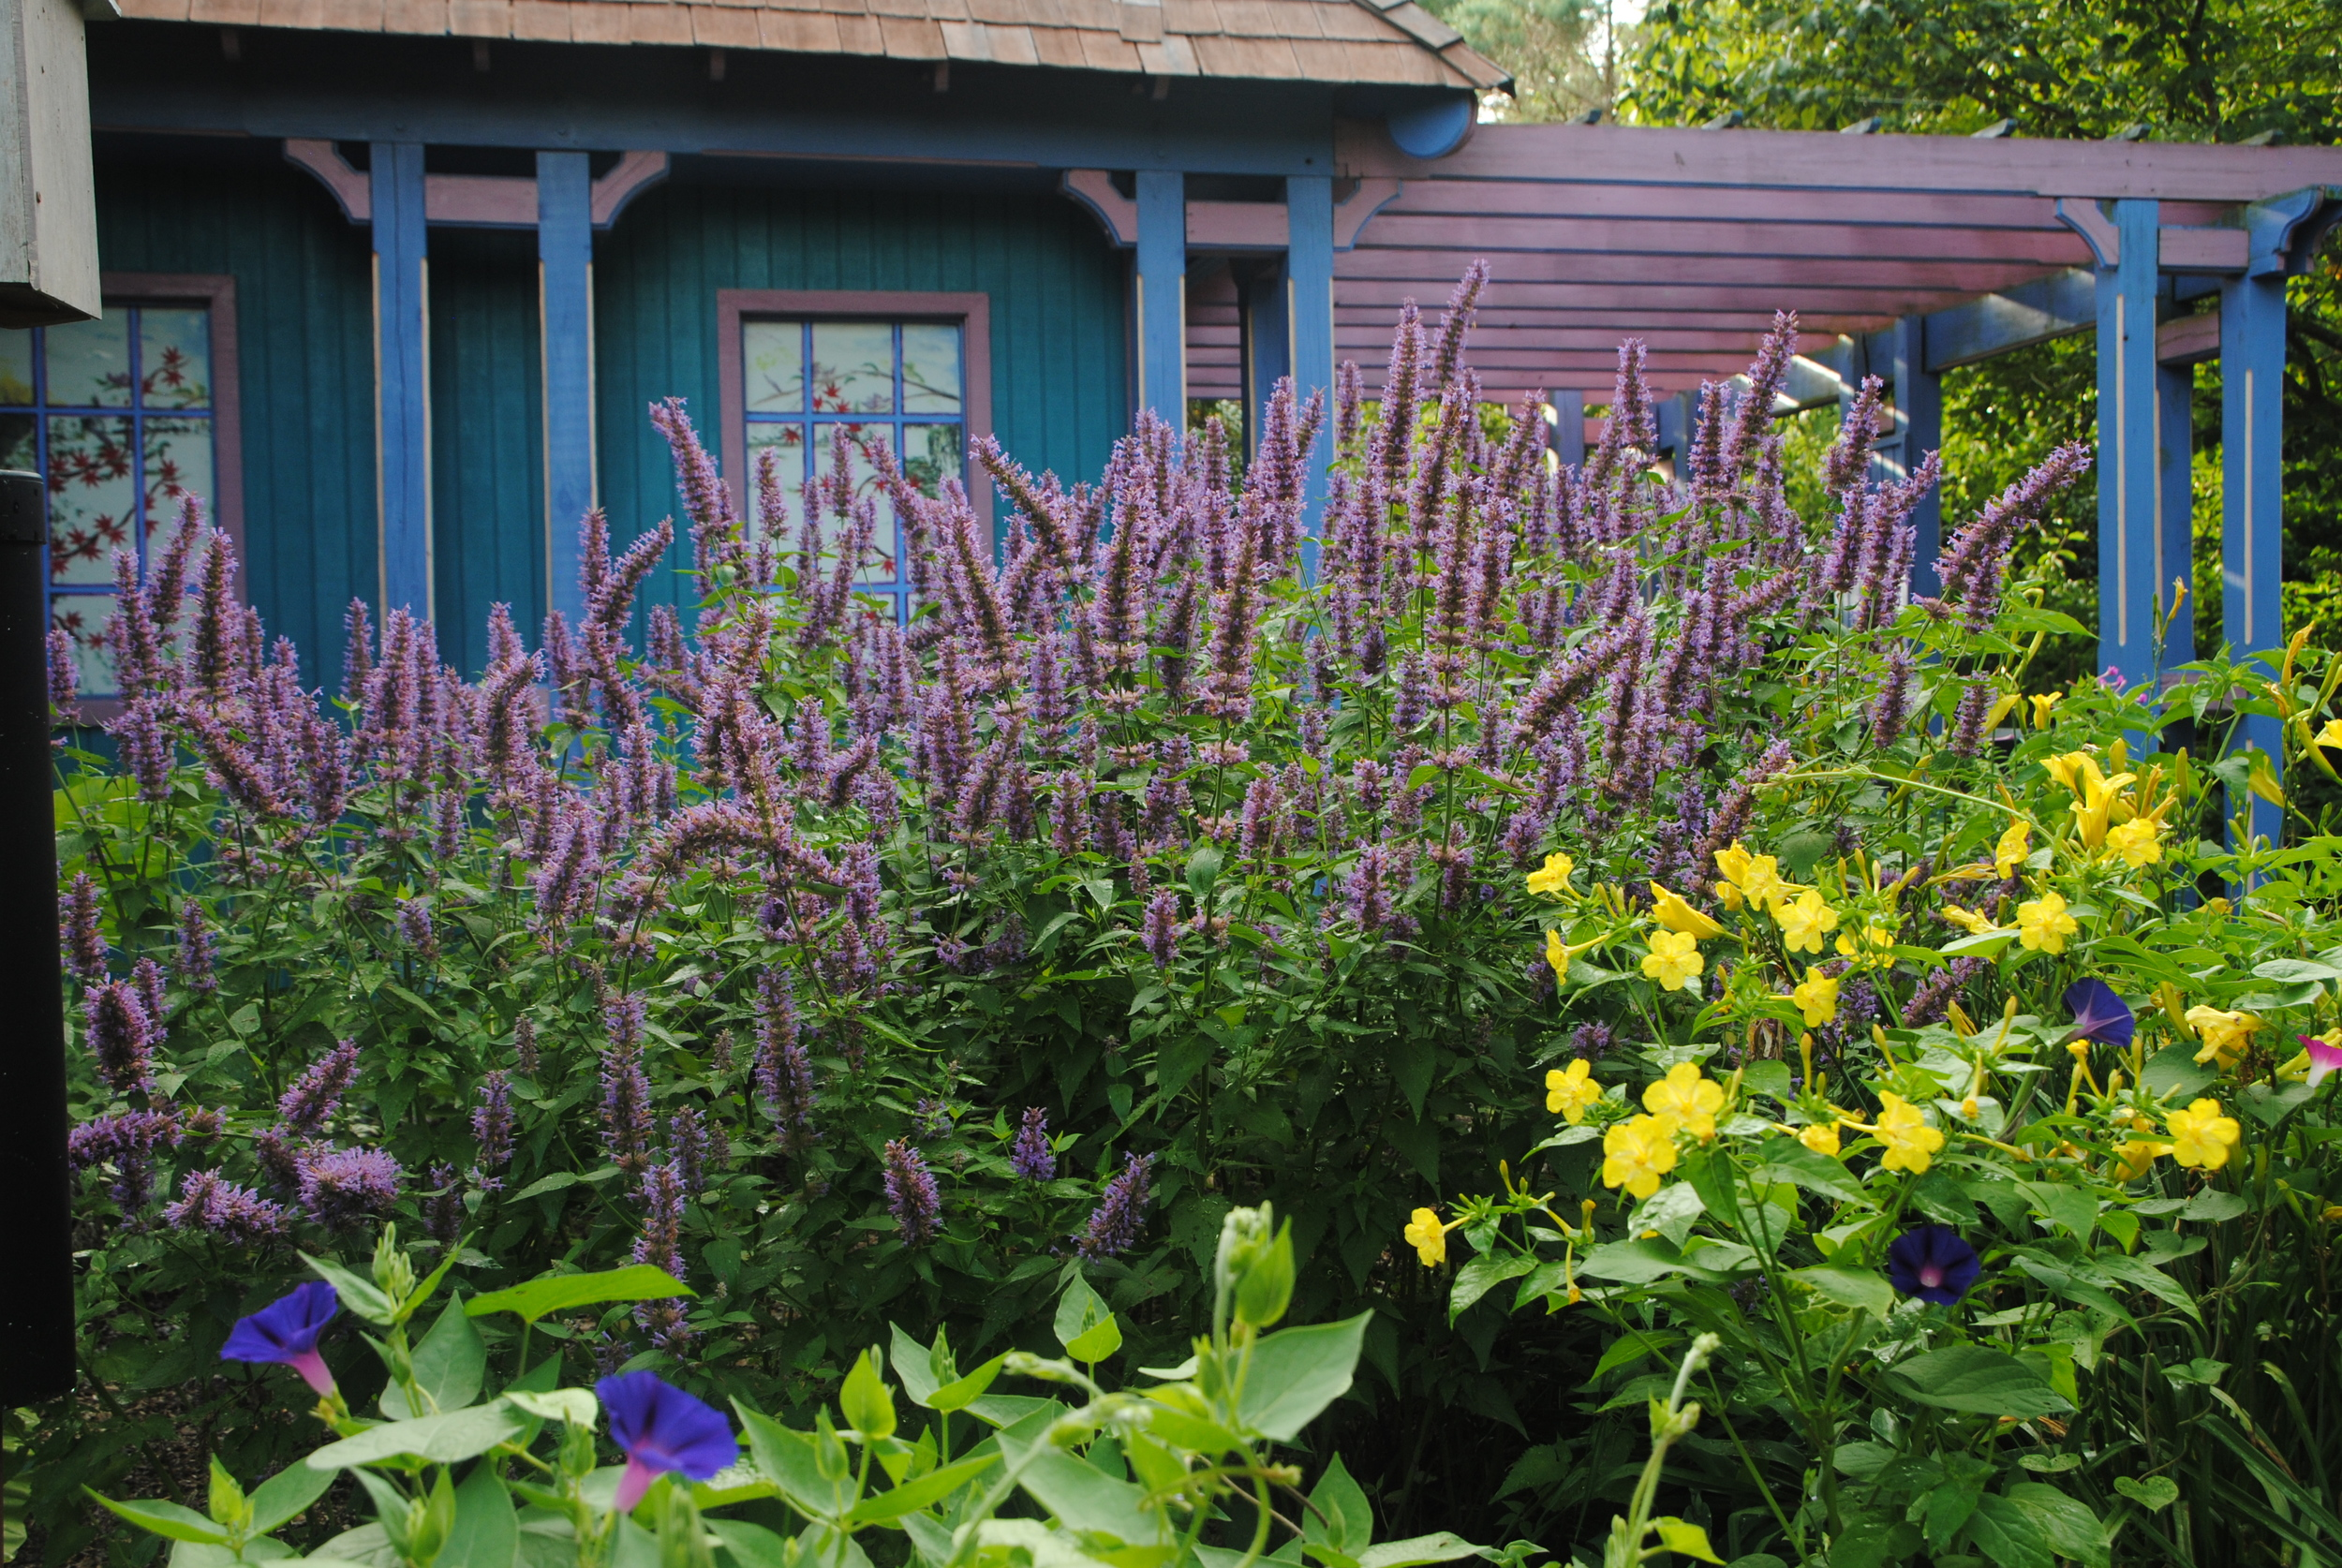 'Blue Boa' combines well with other perennials.